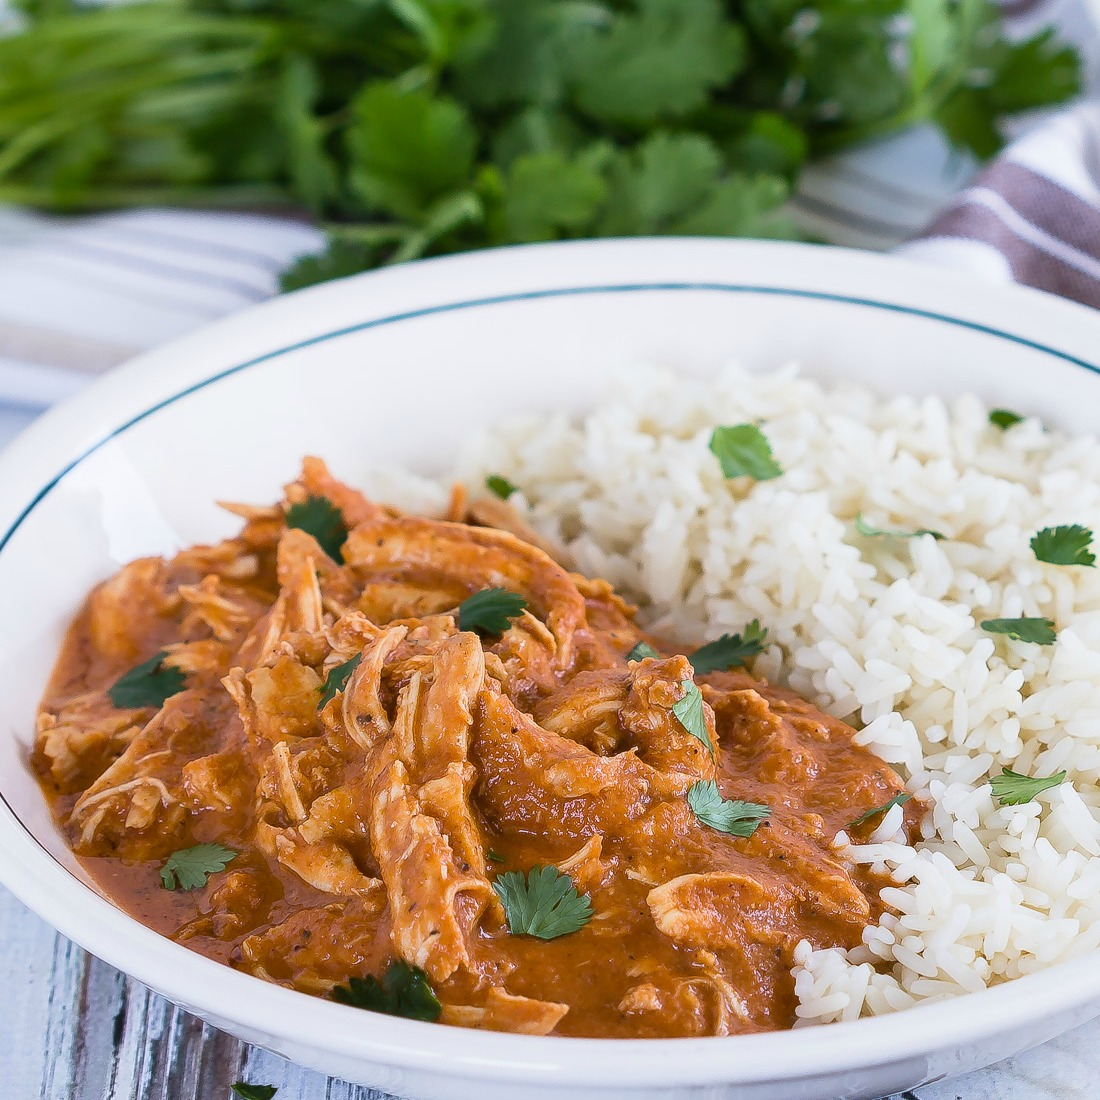 Whether you call it butter chicken or tikka masala, you are going to love this easy, flavorful slow cooker recipe! It's the perfect weeknight meal with very little hands on cooking time!